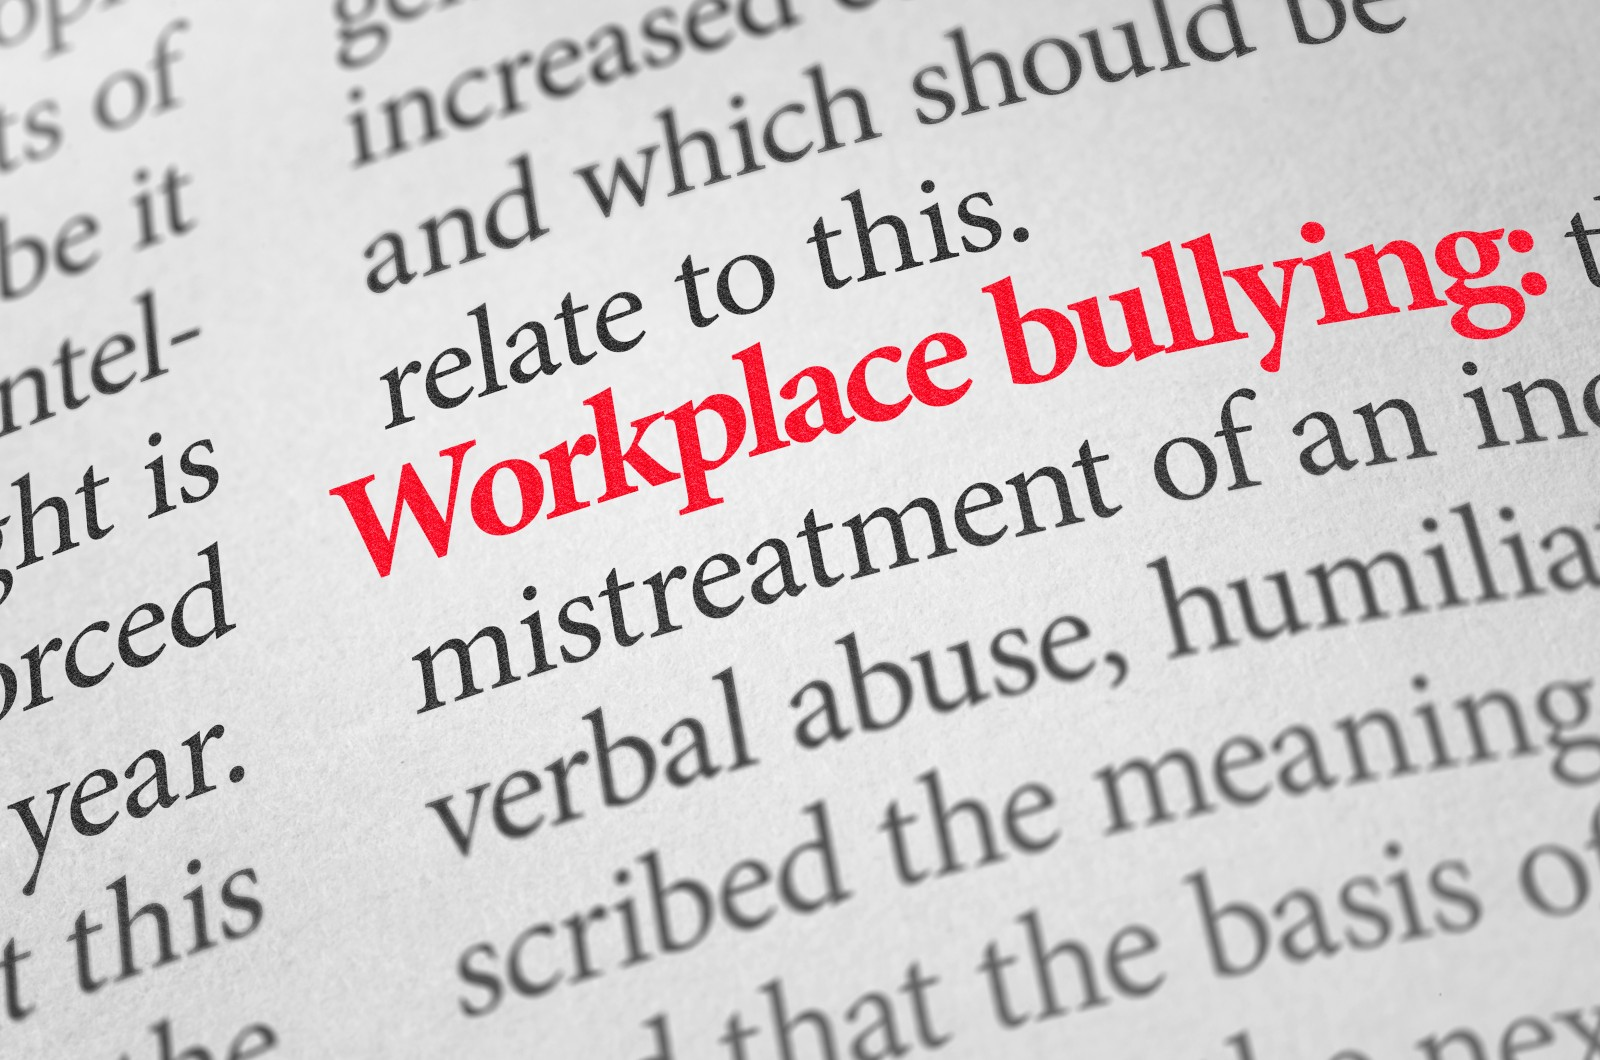 Definition of the term Workplace bullying in a dictionary